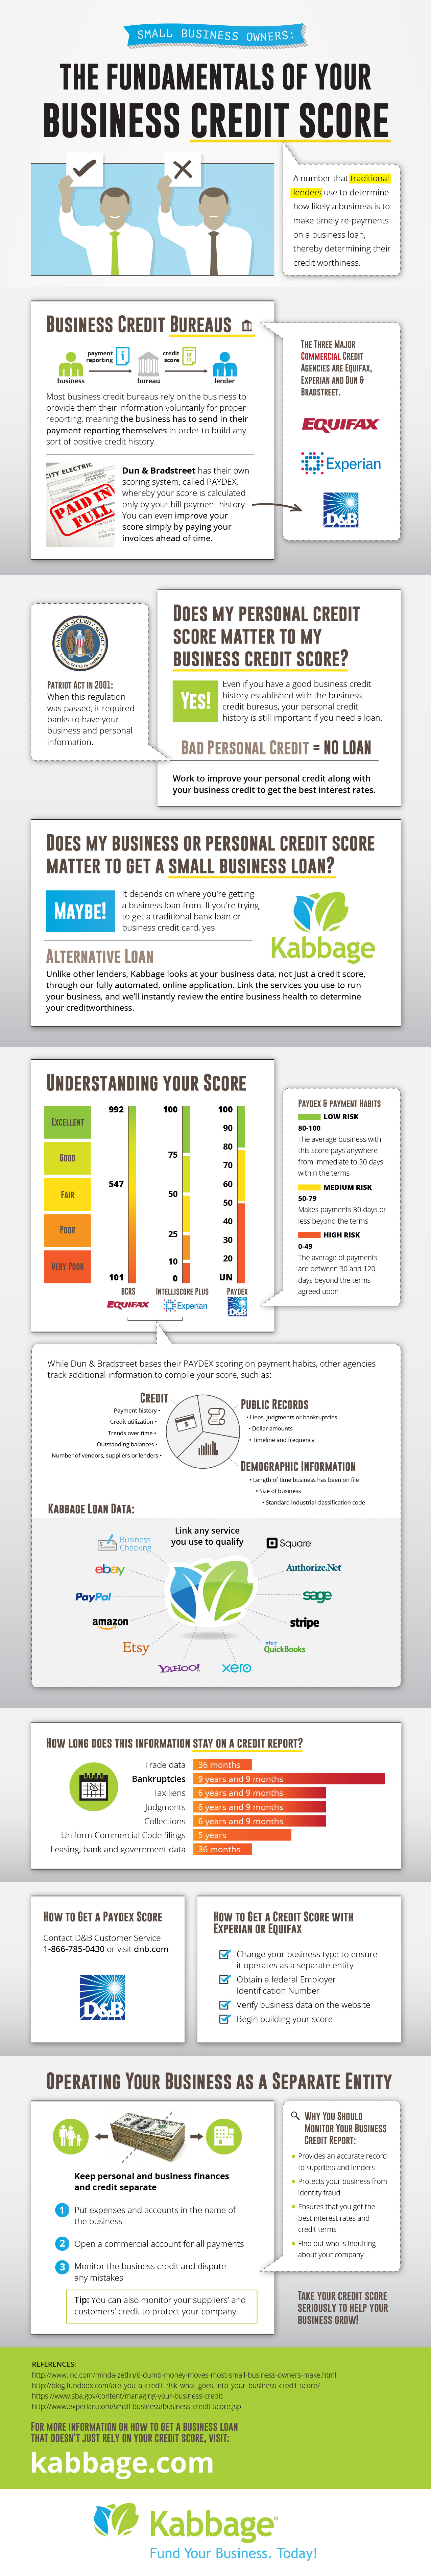 The fundamentals of your business credit score infographic bizcreditscoreinfographicfinal reheart Choice Image